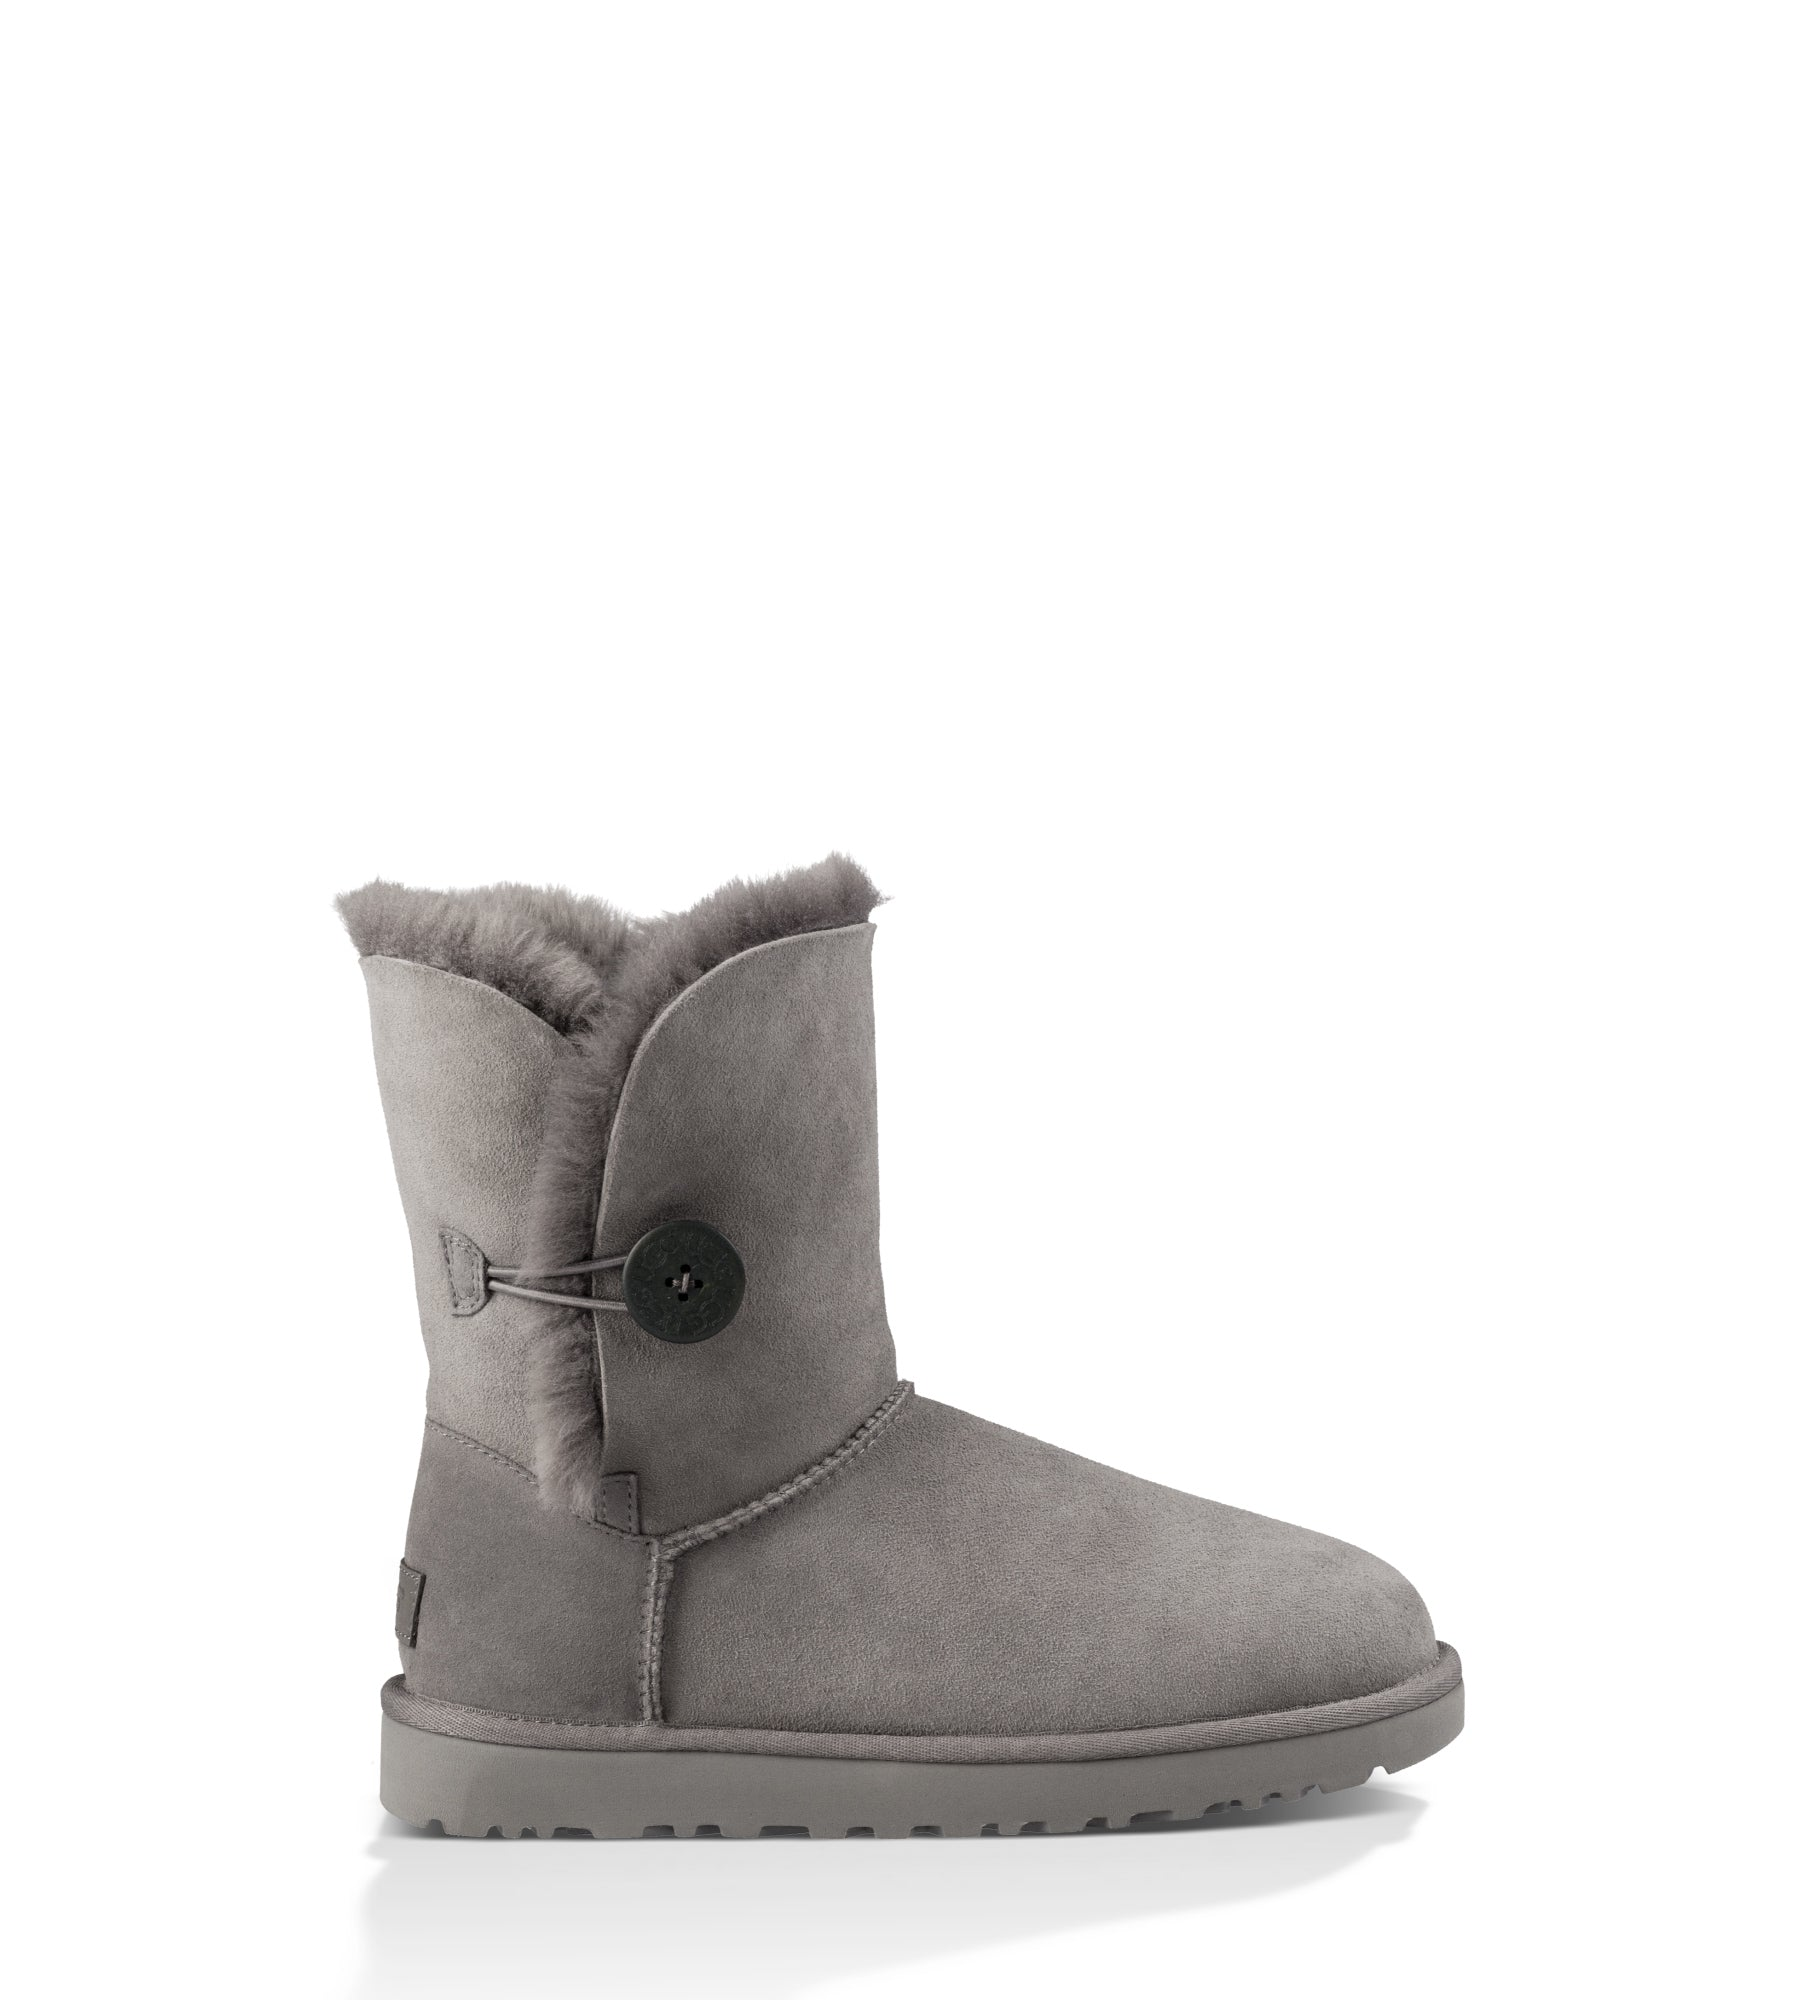 UGG Women's BAILEY BUTTON II